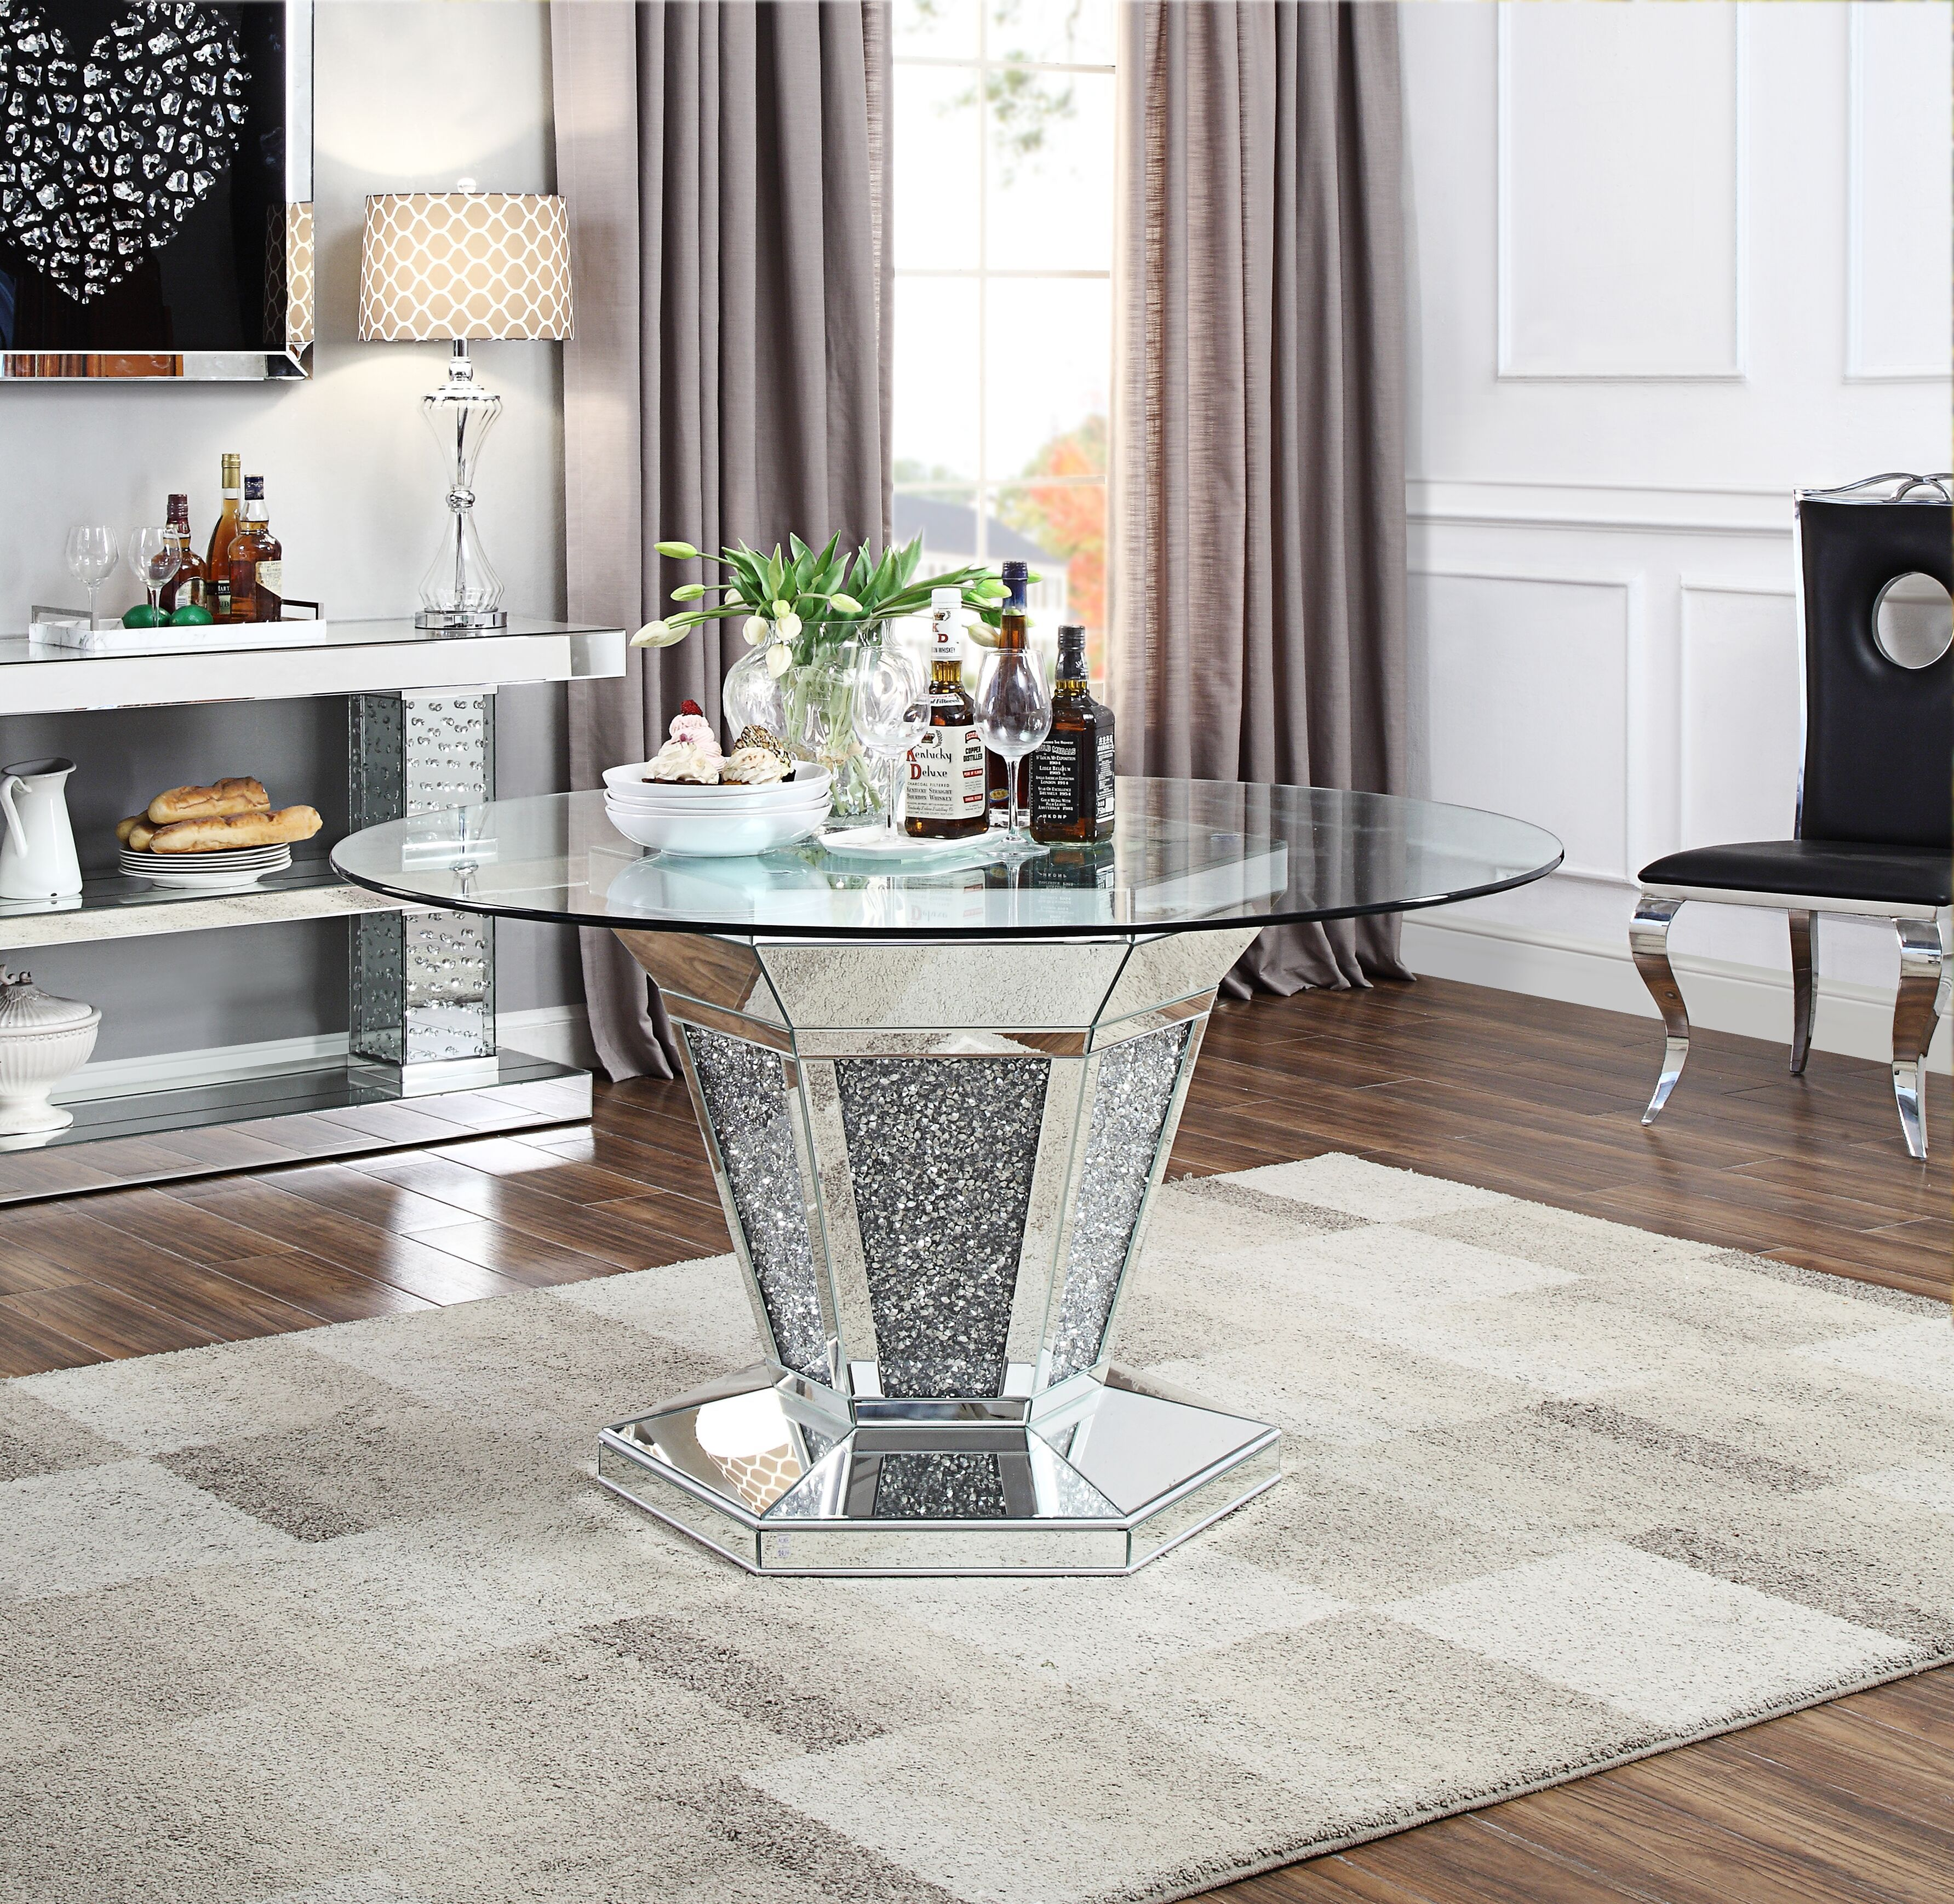 Home Dinner Tables Furniture Dining Table In Kitchen Dining Table